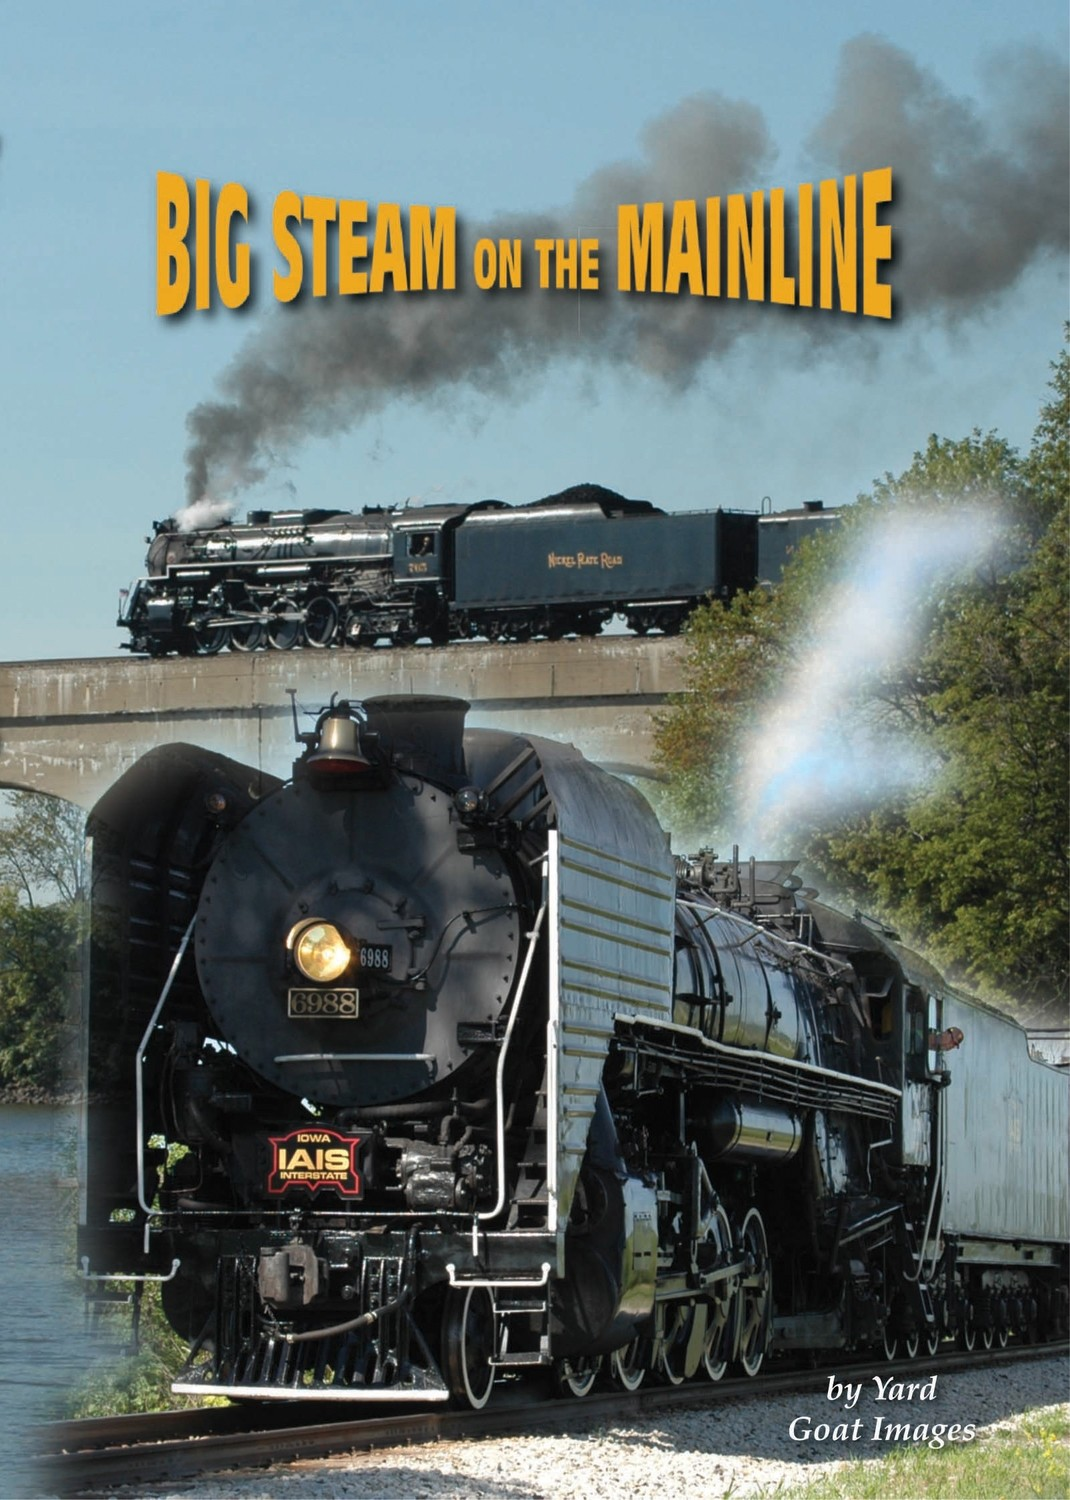 Big Steam on the Mainline